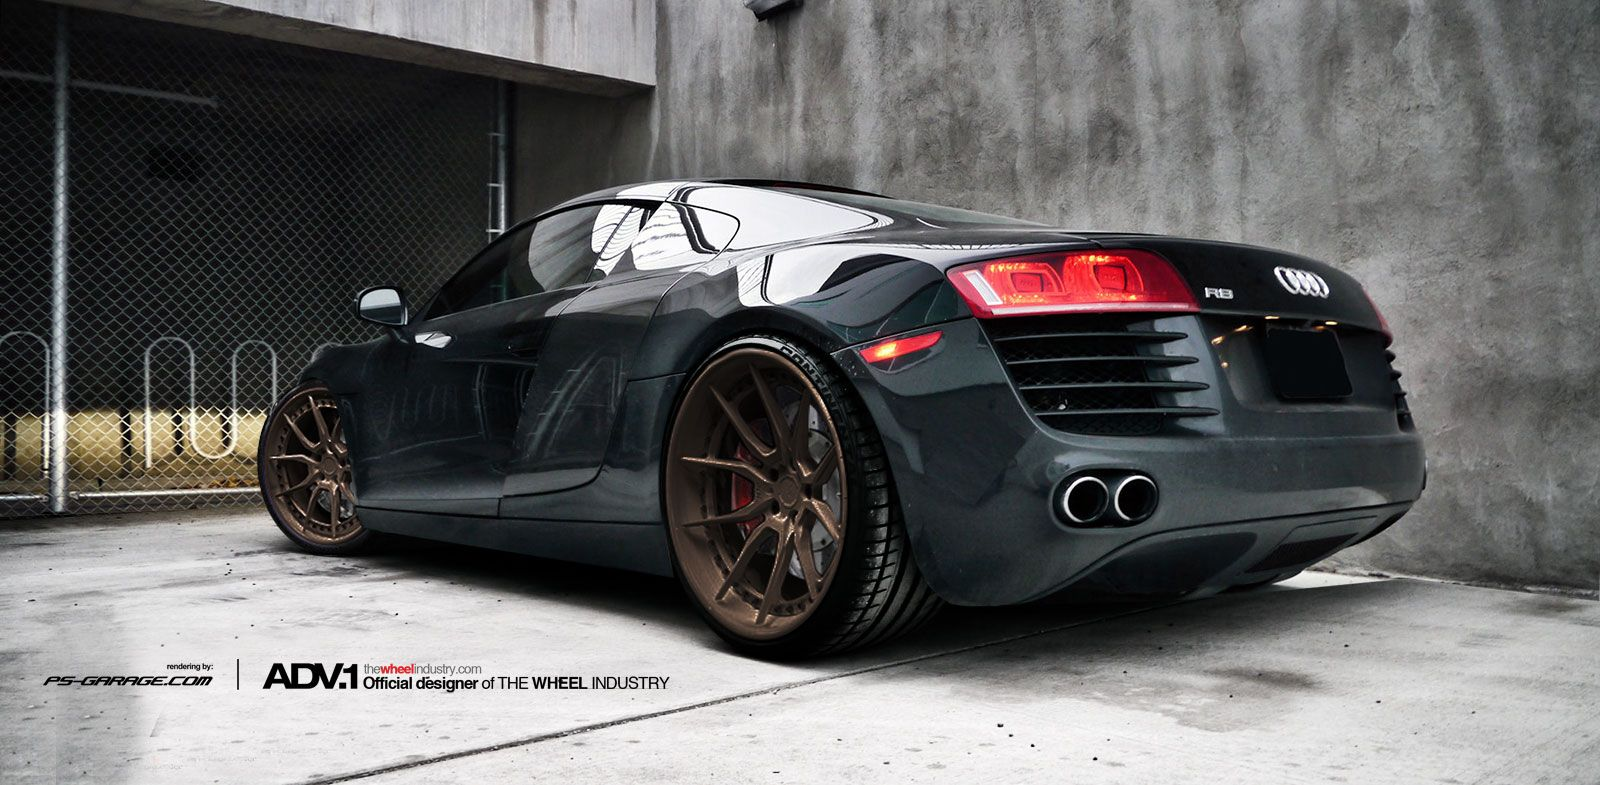 Gentil Audi R8. The Rims Are A Bit Too Big But Wouldnu0027t Mind Owning